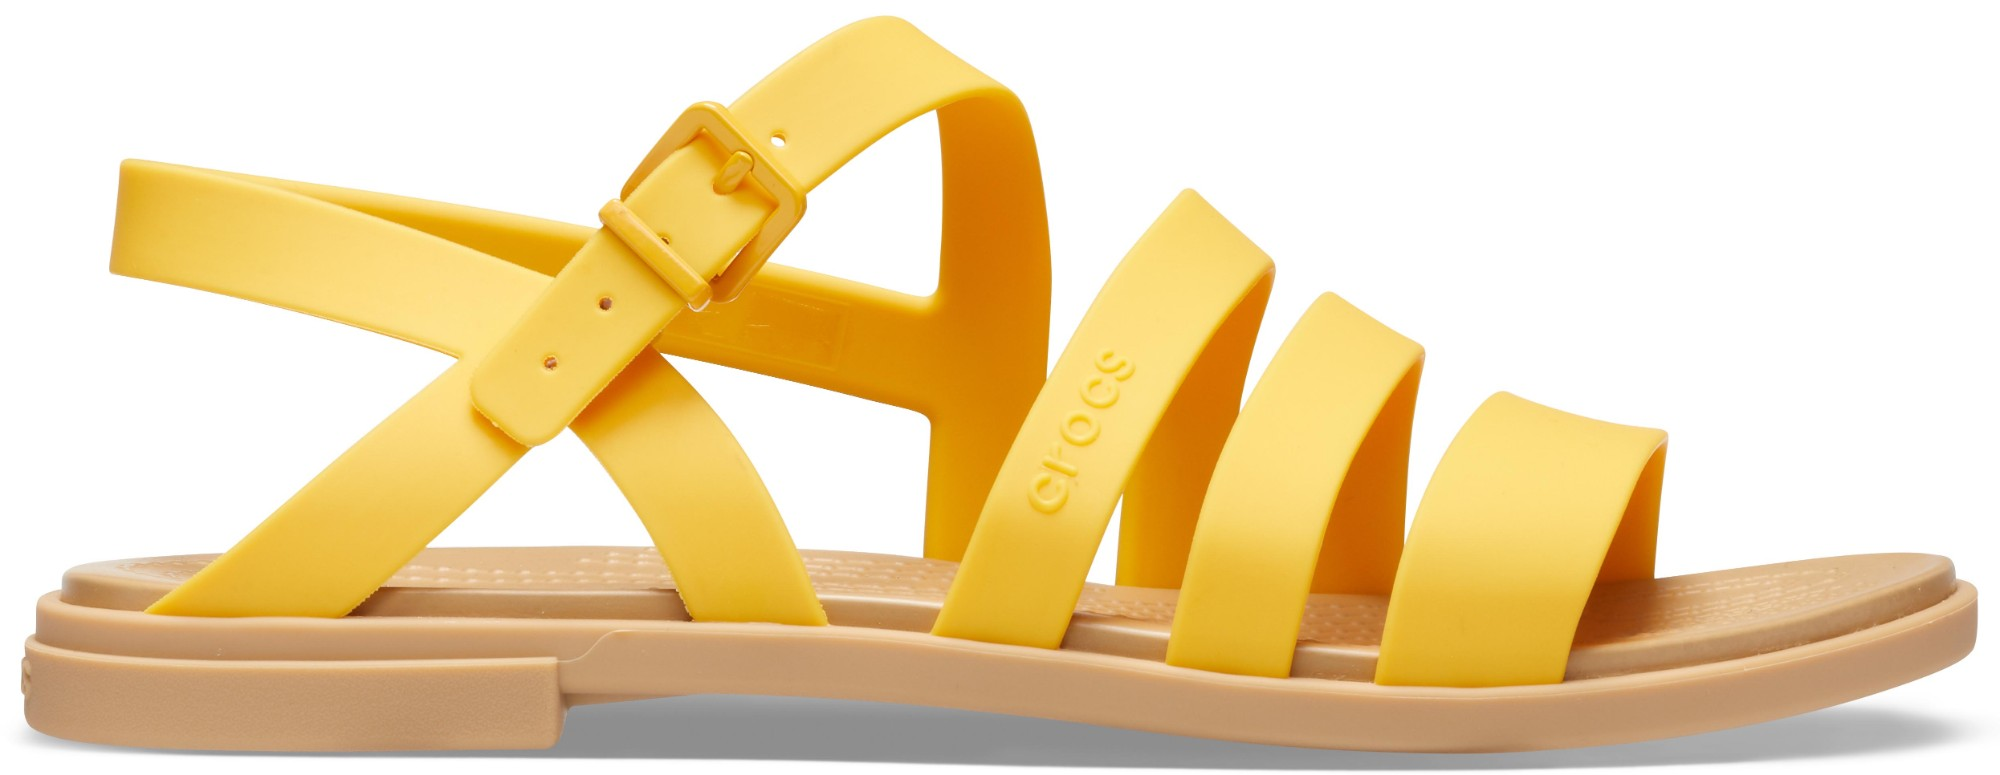 Crocs™ Tulum Sandal Womens Canary/Tan 37,5